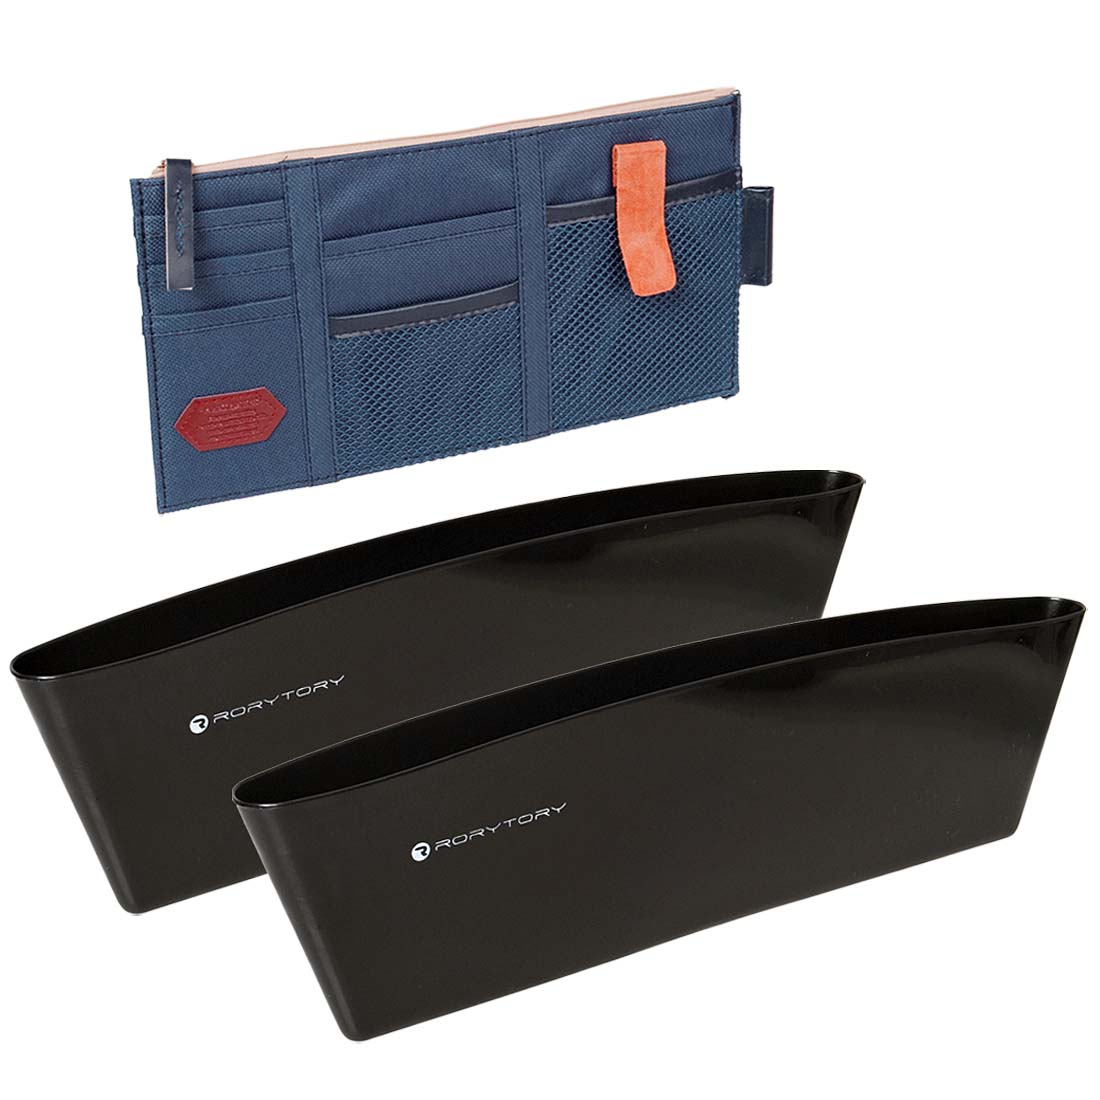 RoryTory Car Organizing Kit: (1) Visor Caddy + (2) Side Seat Pockets Organizers